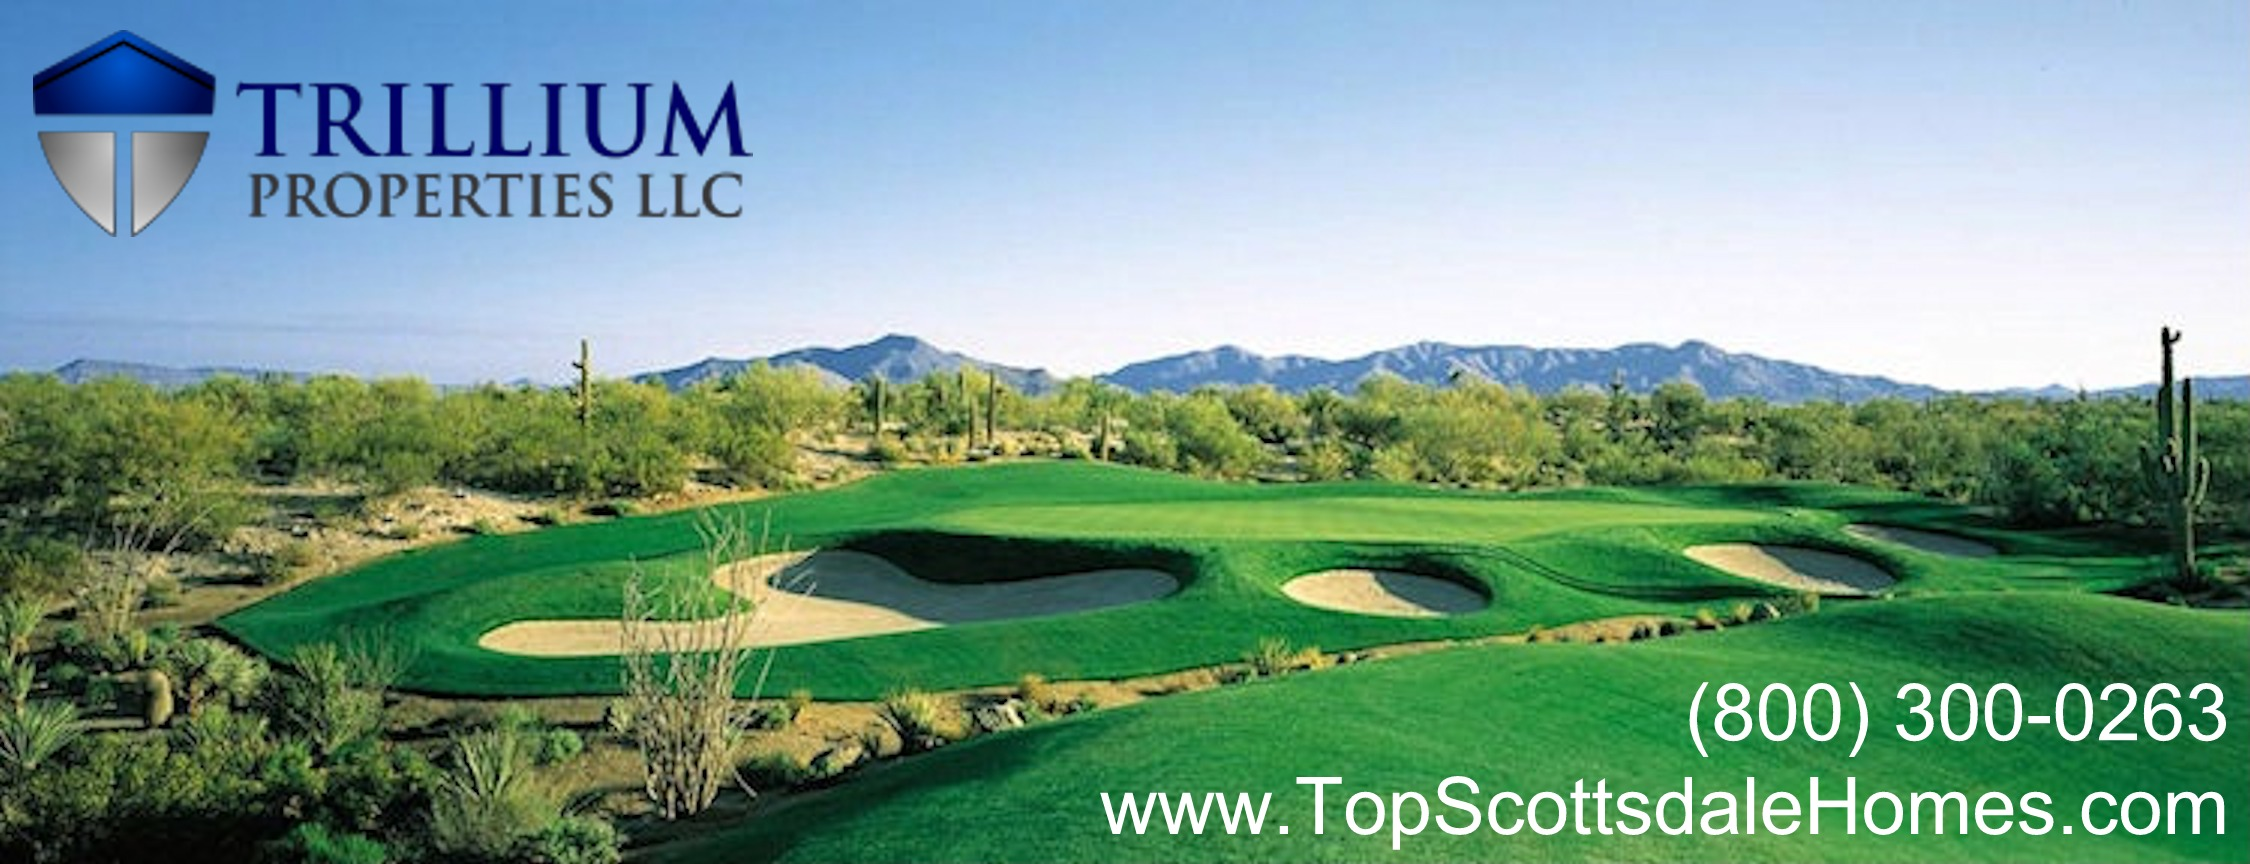 Top Scottsdale Homes